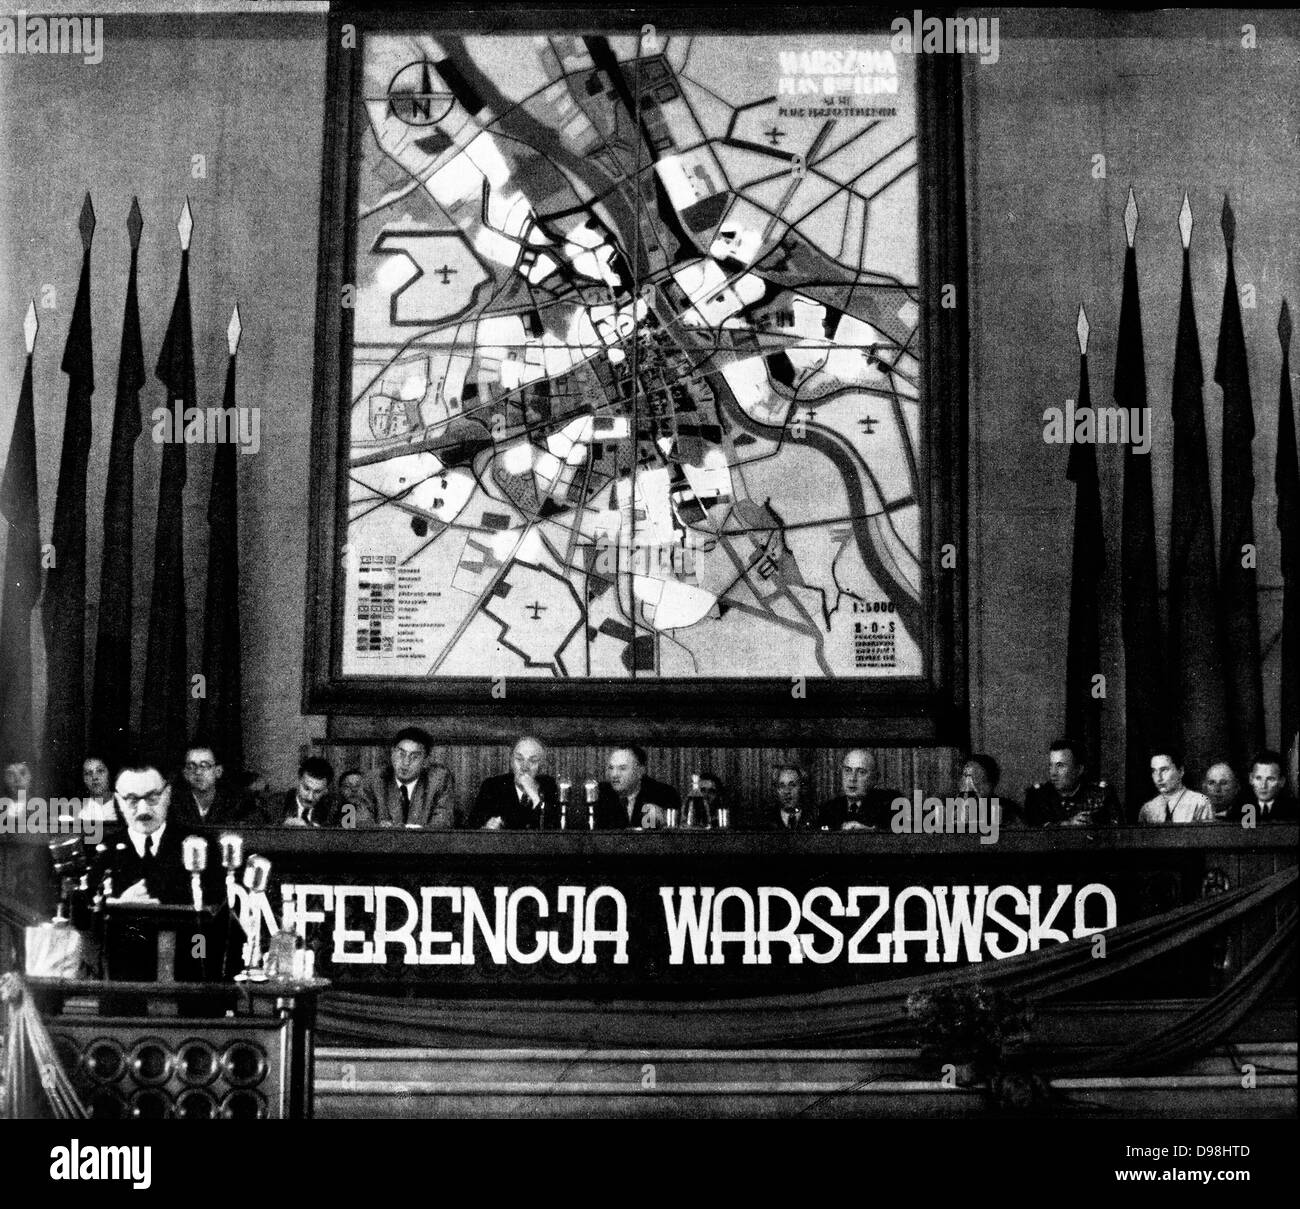 Communist Party conference in Warsaw on July 3, 1949 - Stock Image